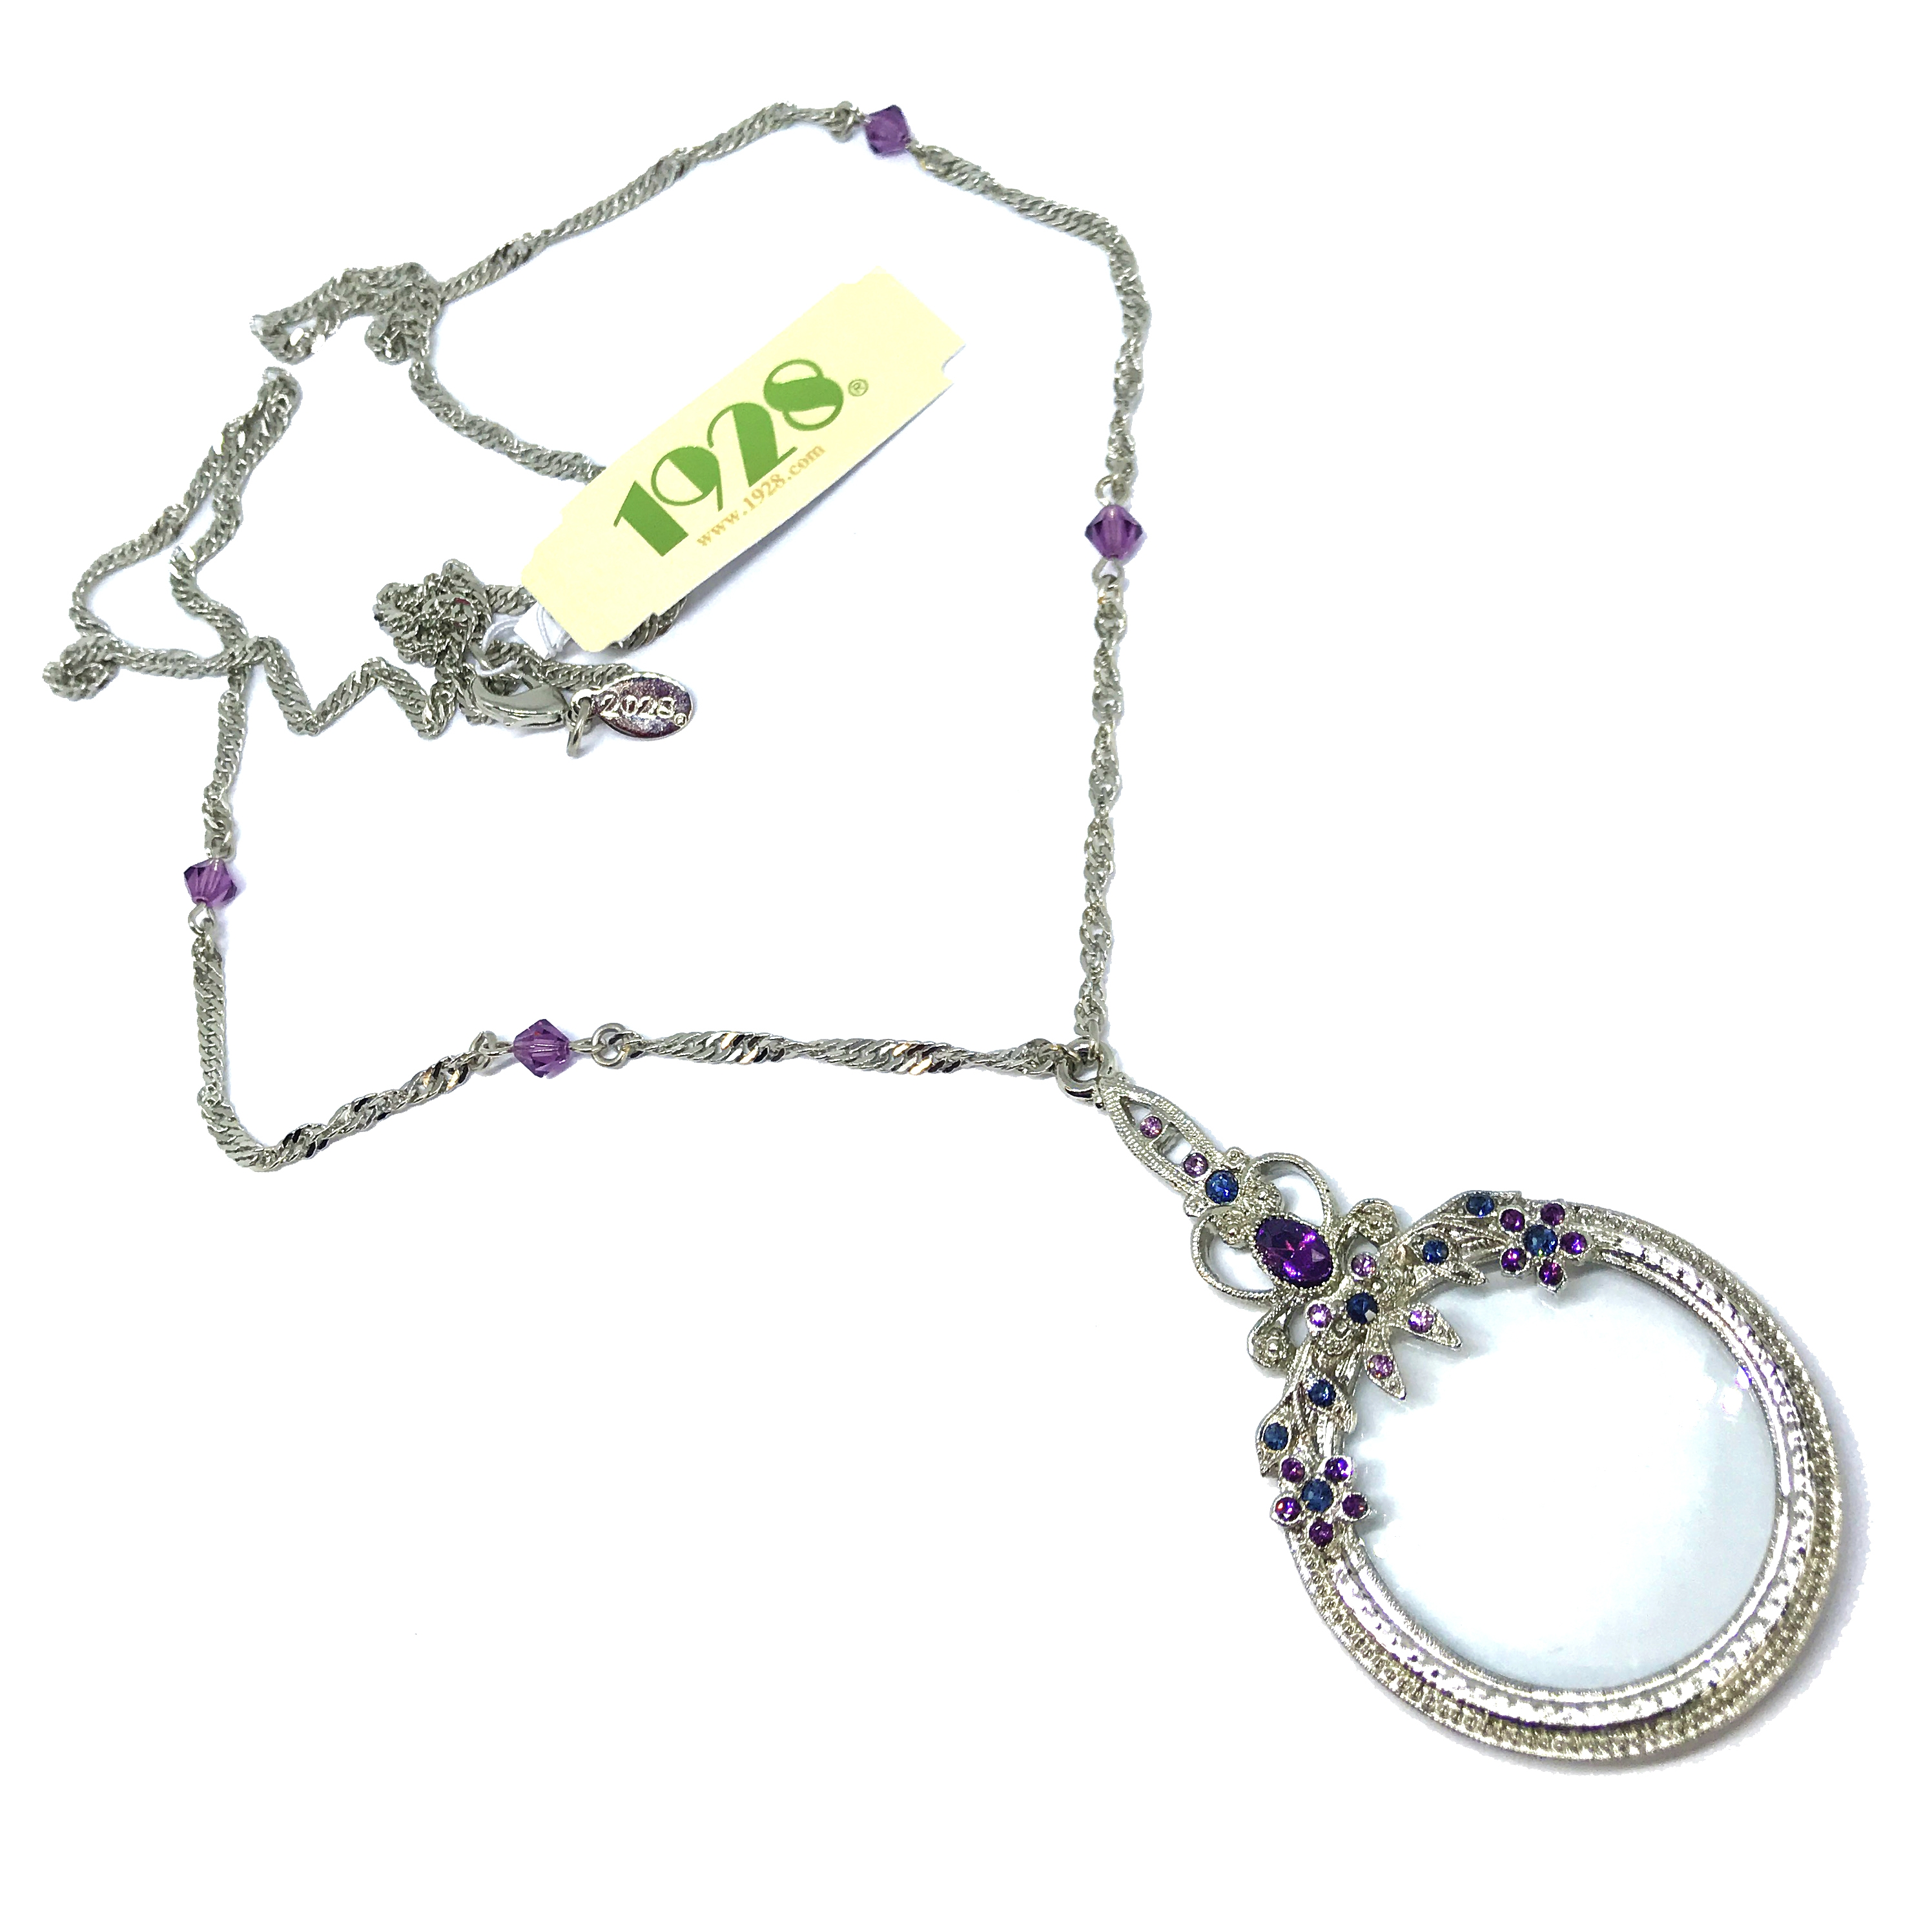 1928 Jewelry Company, magnifier, magnifying necklace, hand antiqued pewter, silver-tone, US made, made in the USA, pewter, reprise, 1928 pieces, B'sue by 1928, imitation amethyst, Montana blue, B'sue Boutiques, 2.75 inch magnifying glass, 1928/01482